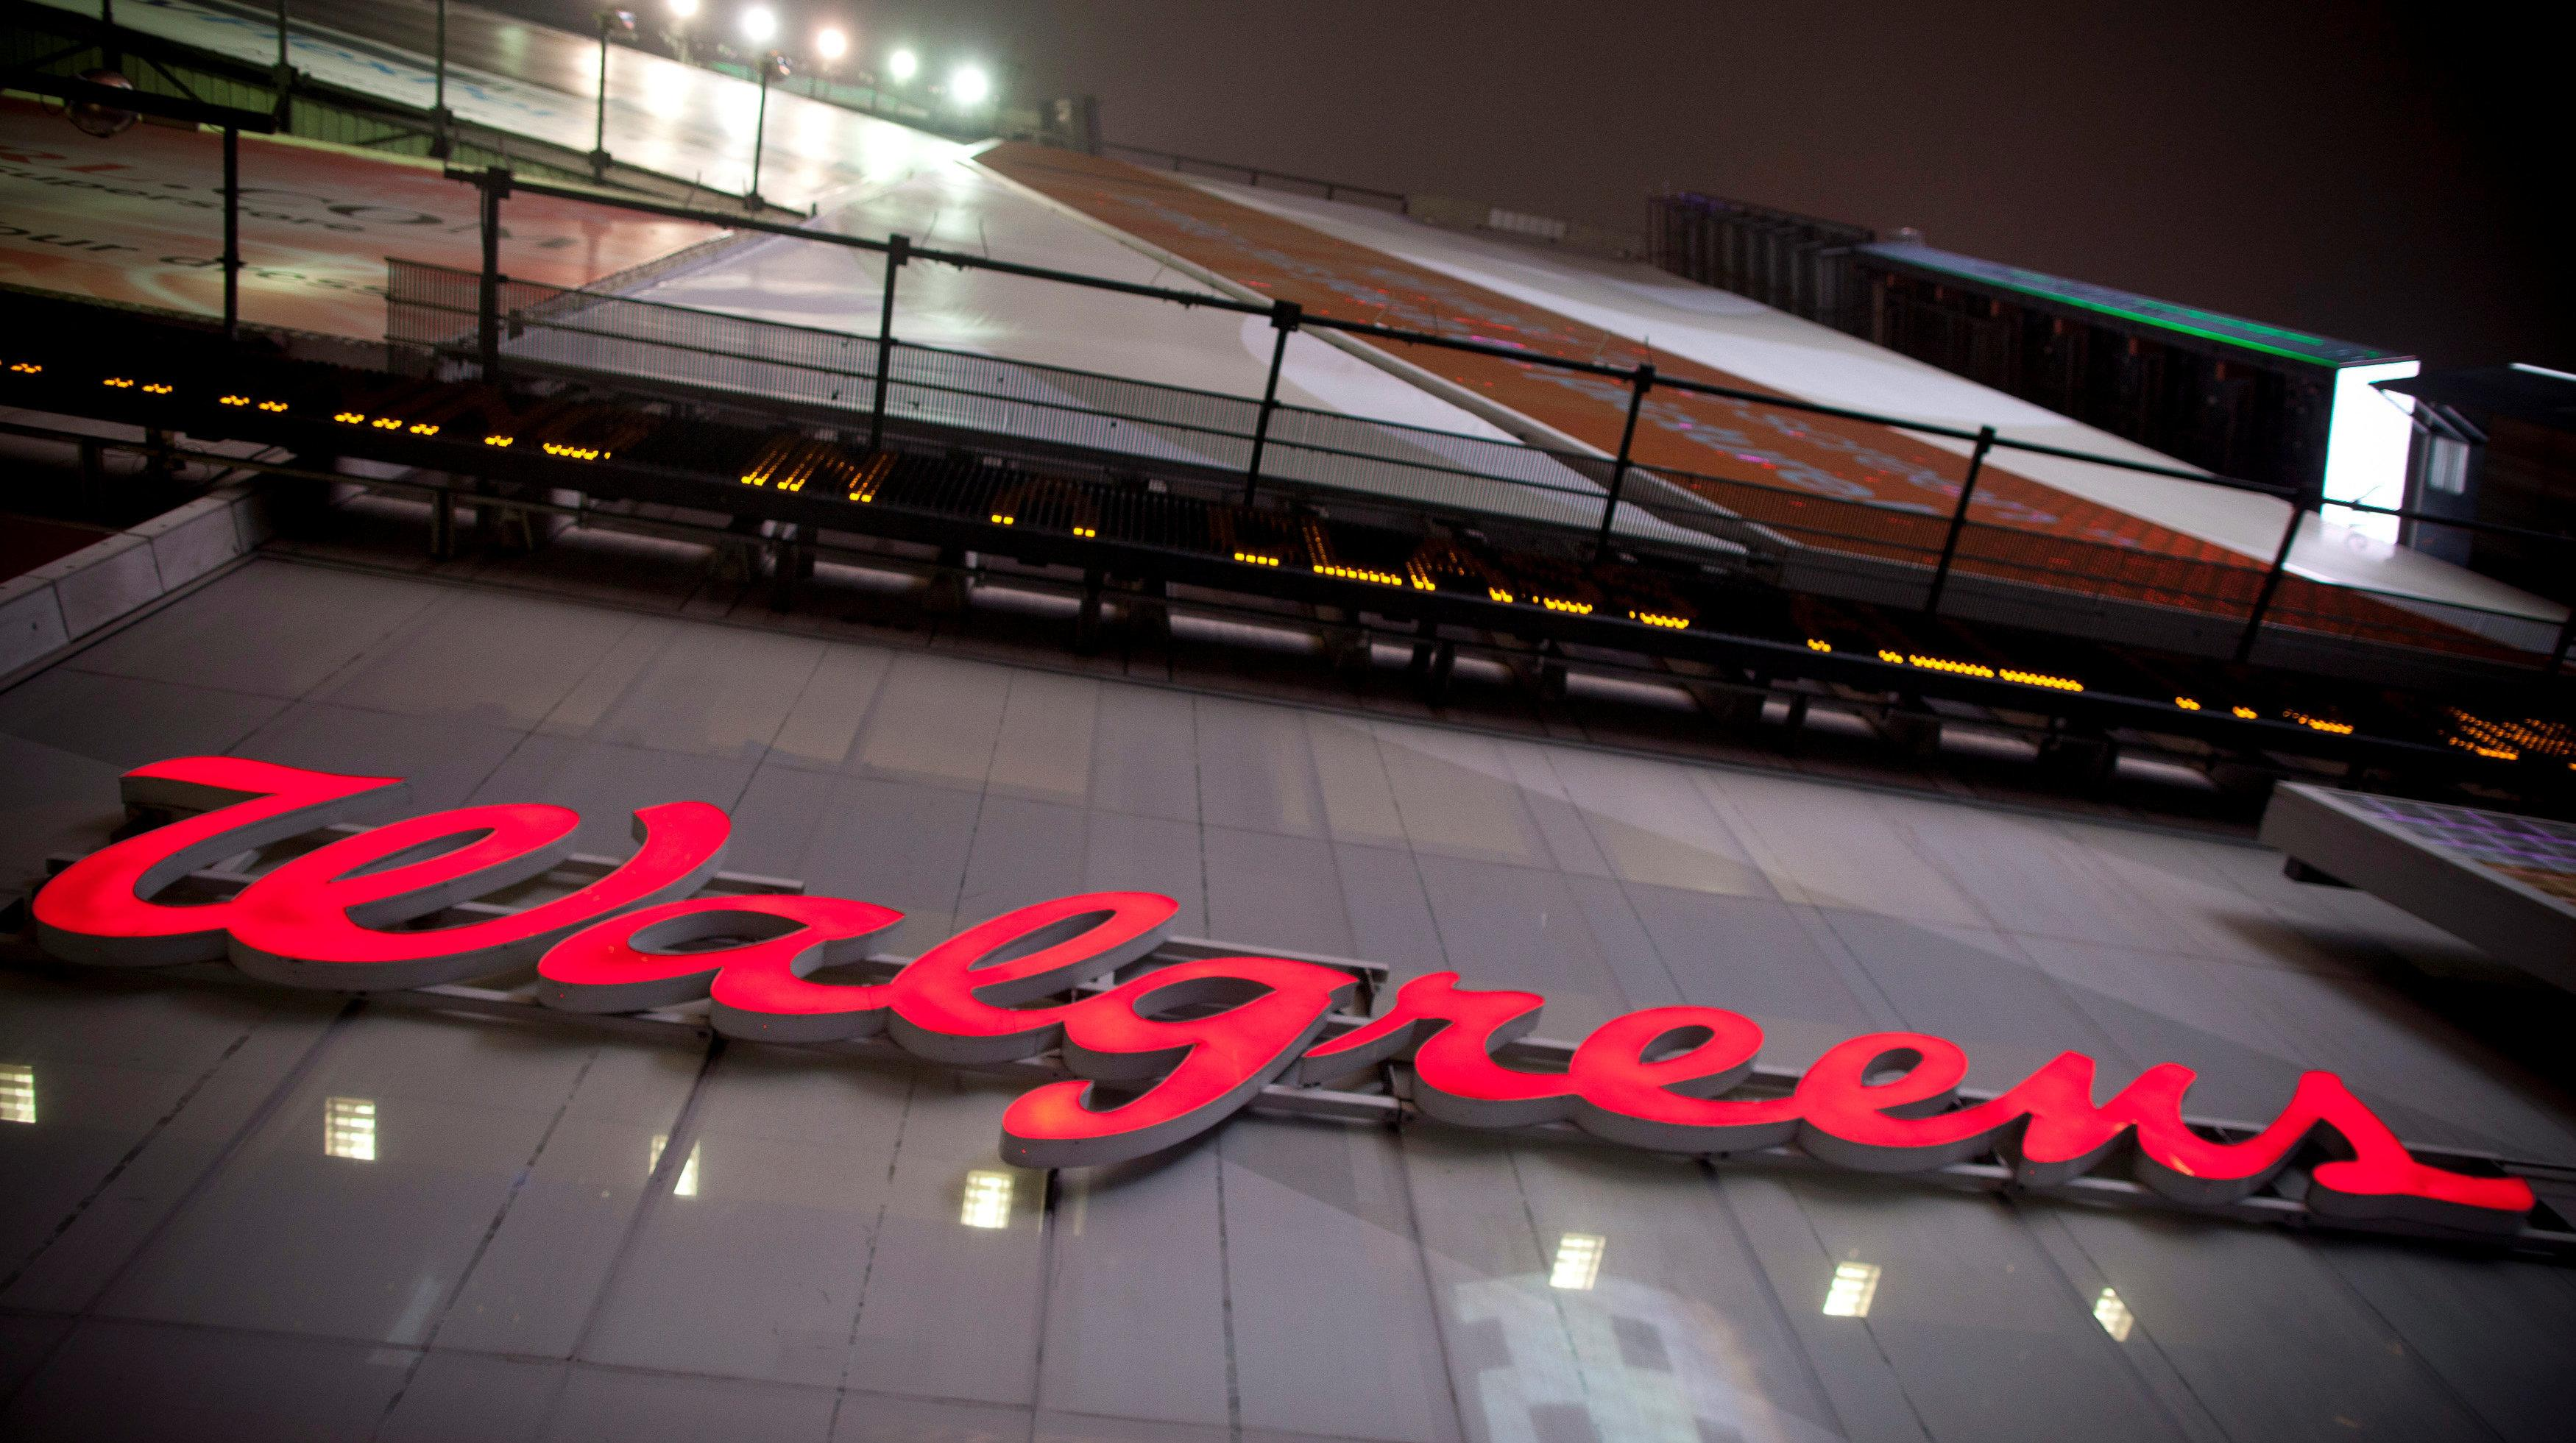 Walgreens Has Adopted A Transgender Inclusive Bathroom Policy